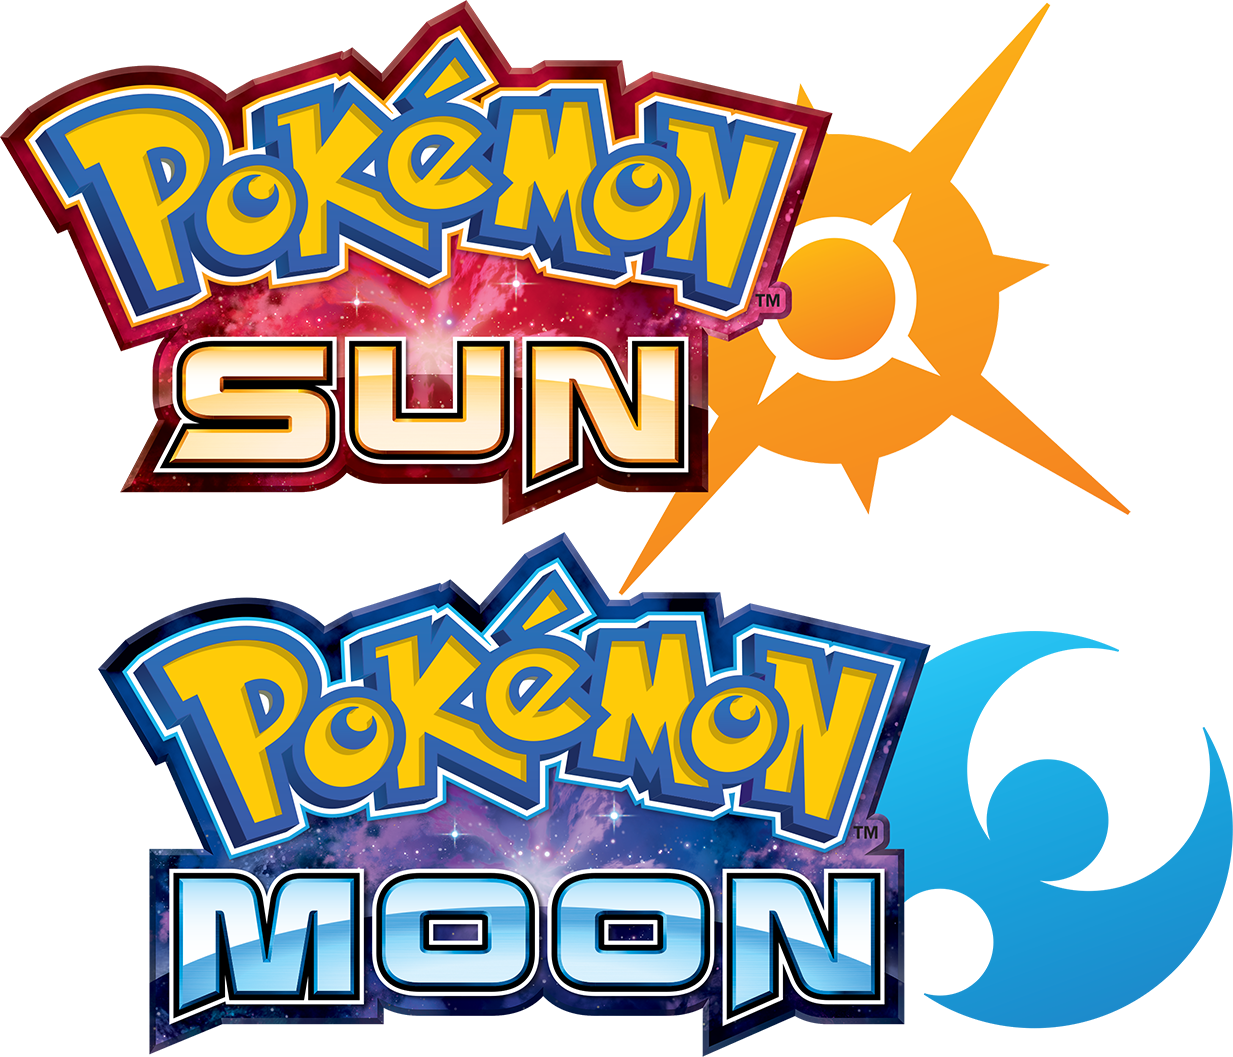 Pokemon sun png. Some teas and quiet